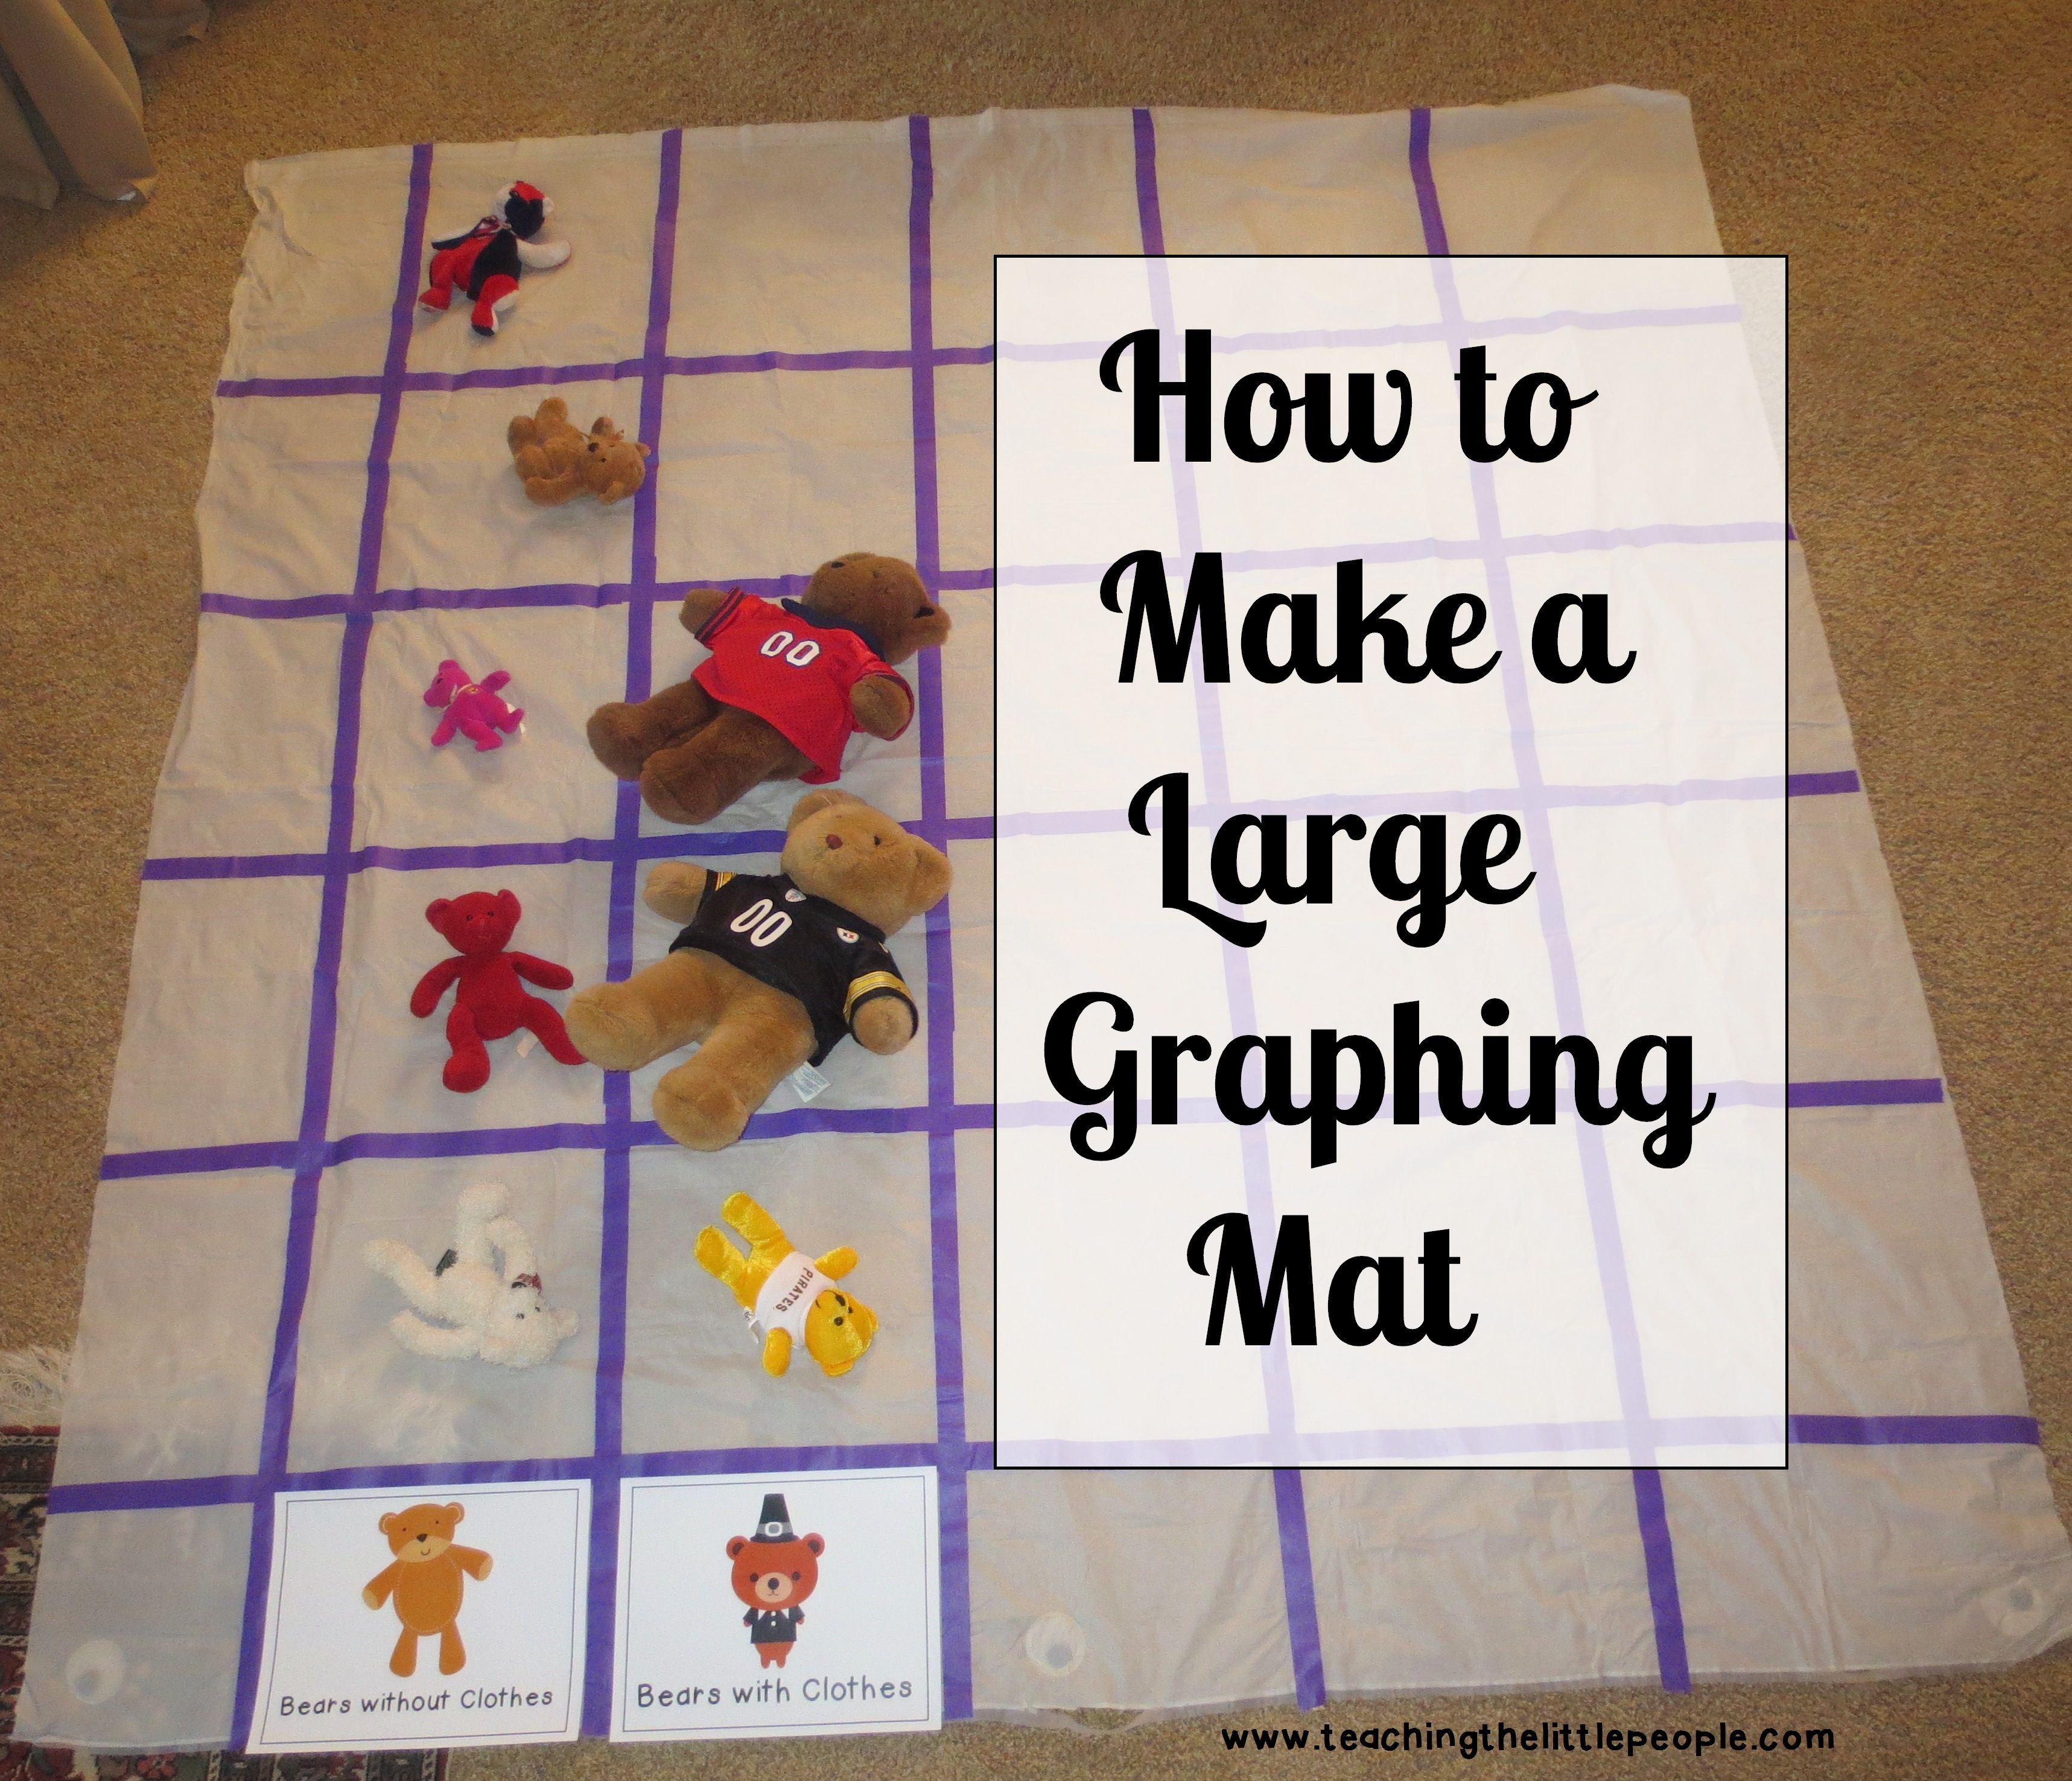 Making A Large Graphing Mat From Teaching The Little People